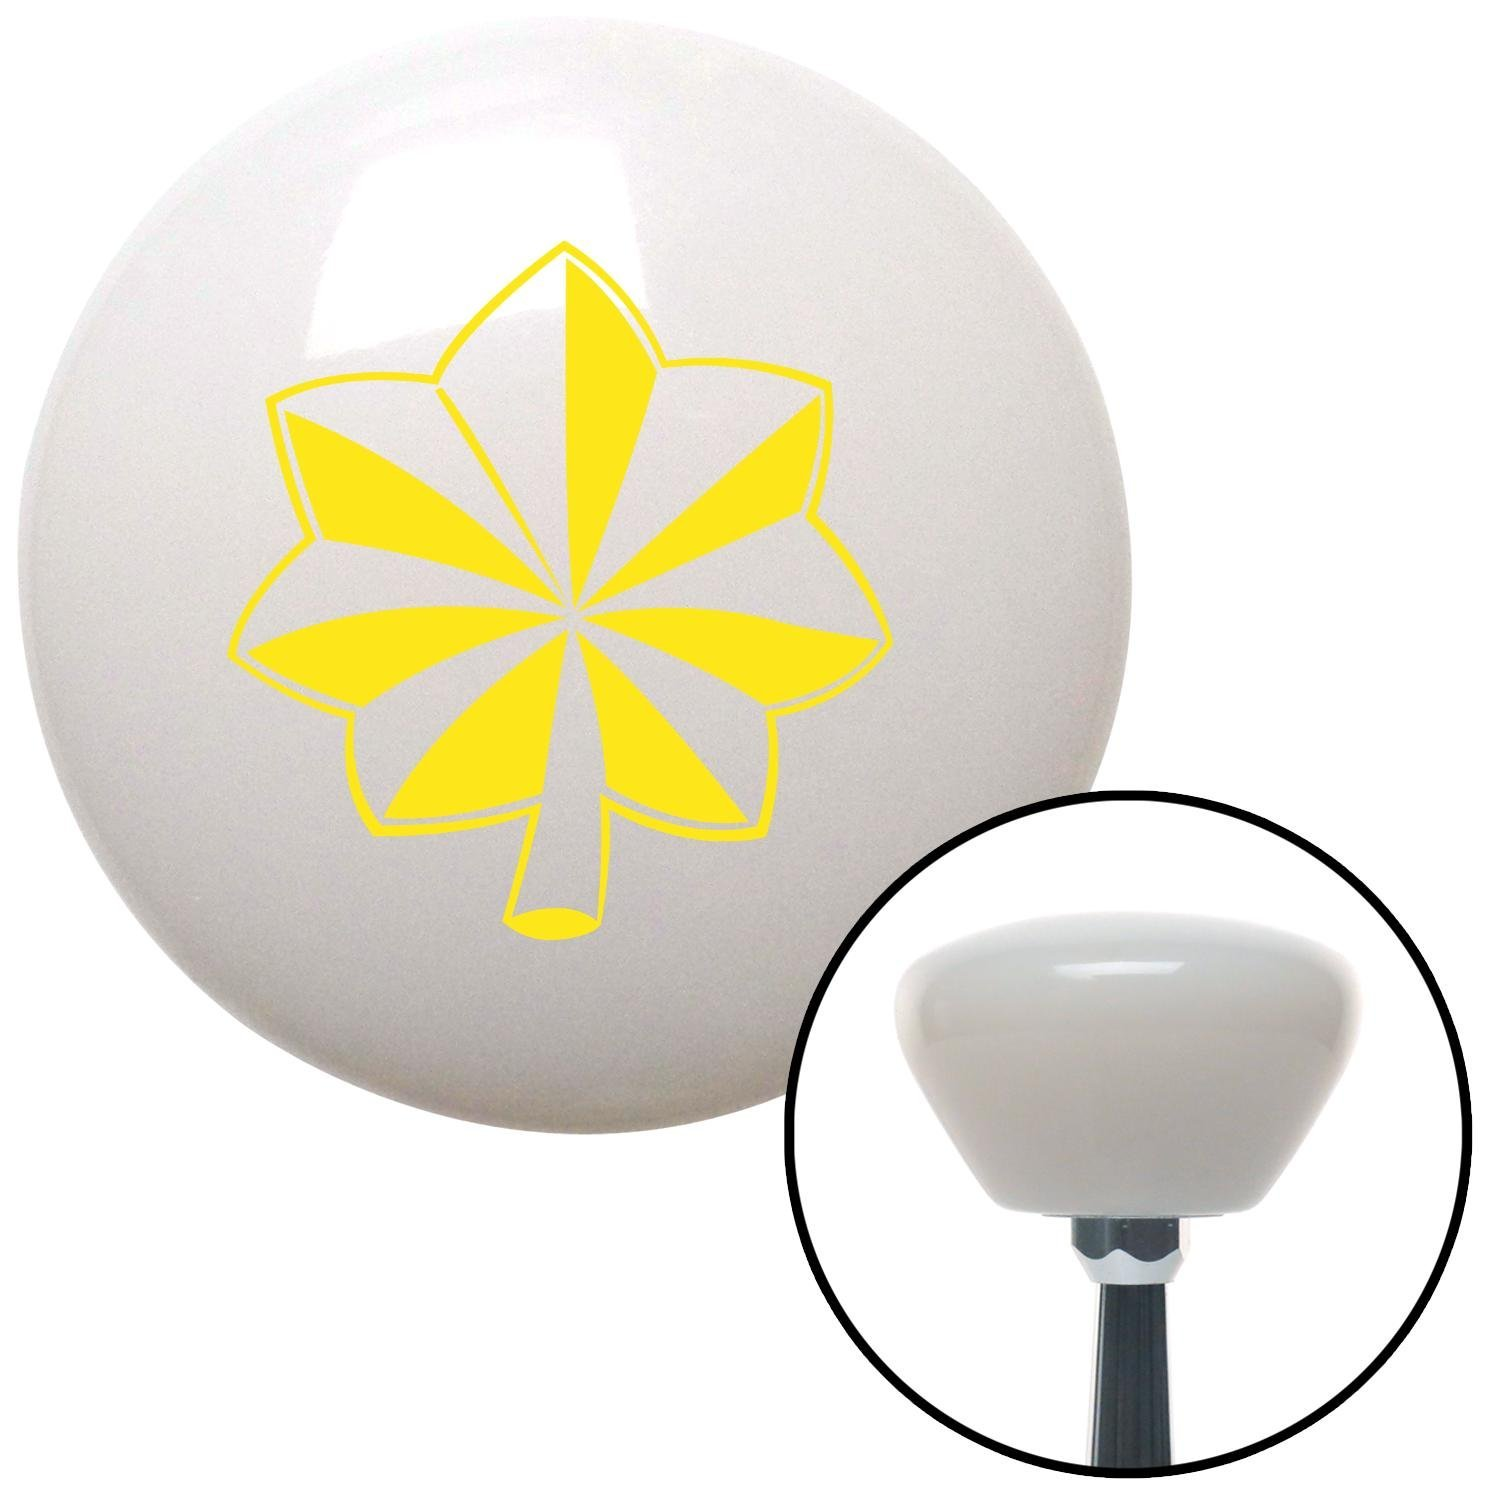 American Shifter 154408 White Retro Shift Knob with M16 x 1.5 Insert Yellow Officer 04 - Major and Lt. Colonel